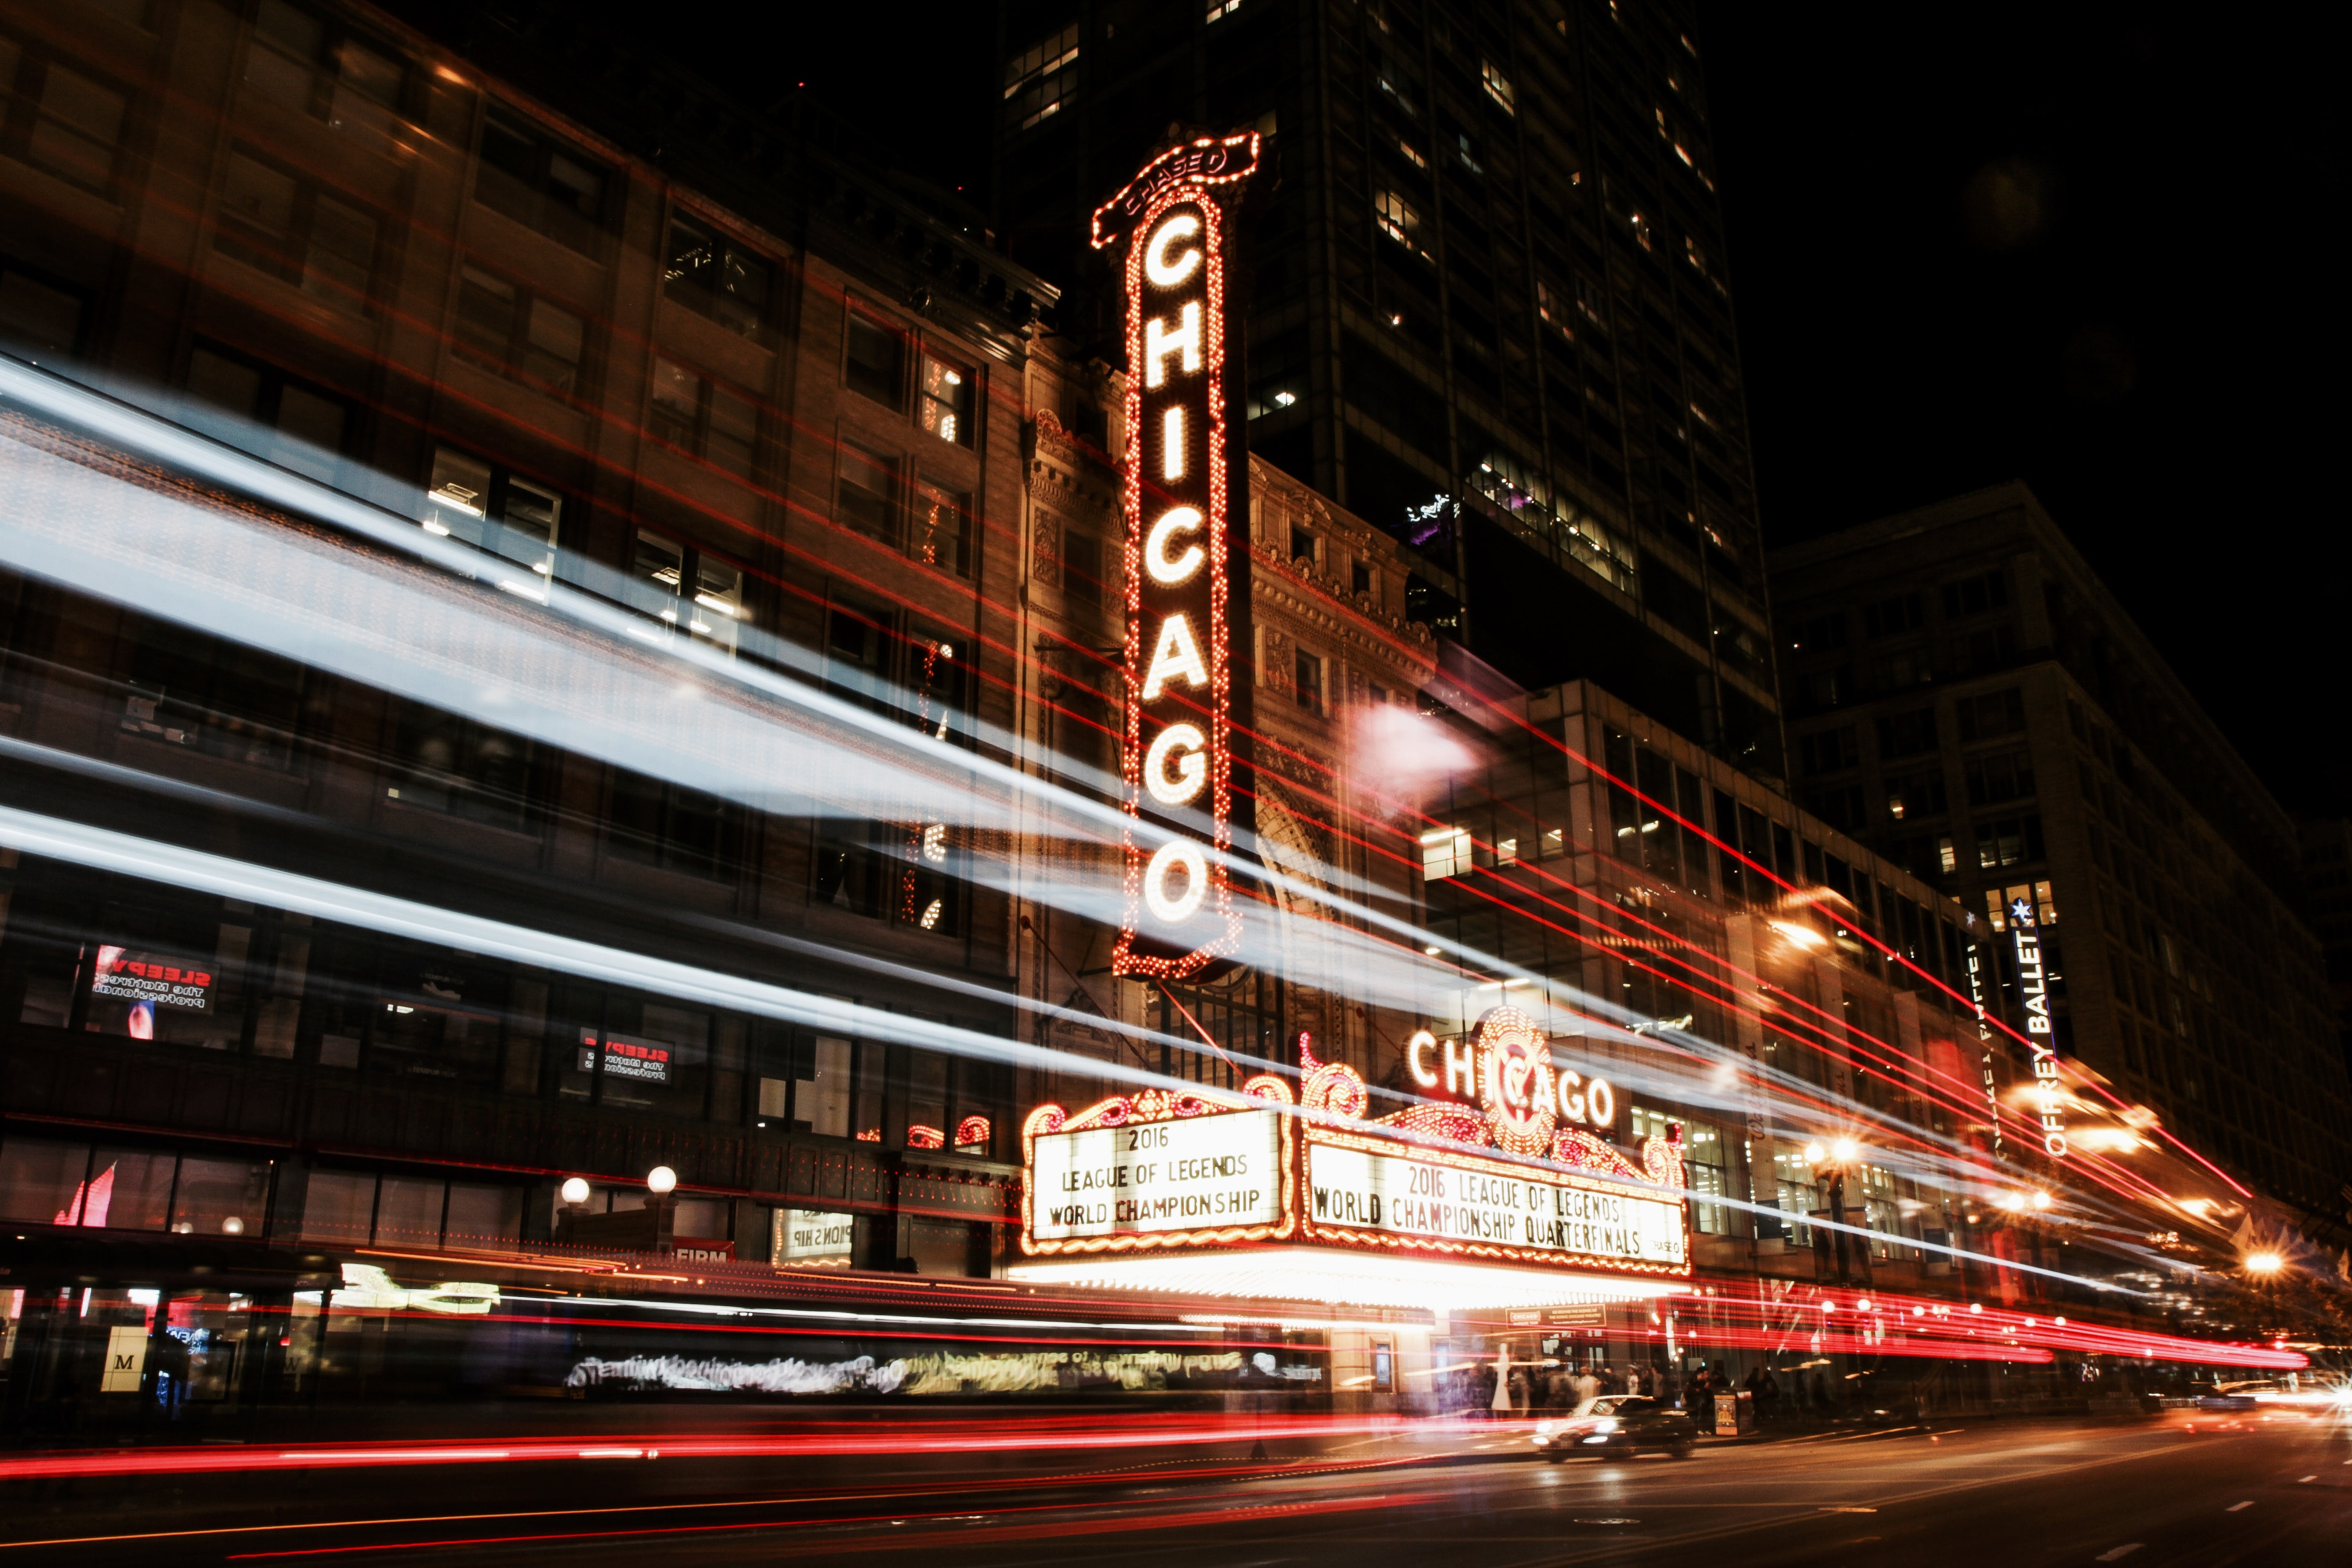 Must-see in Chicago: Sights in the Chicago Loop You Won't Want to Miss